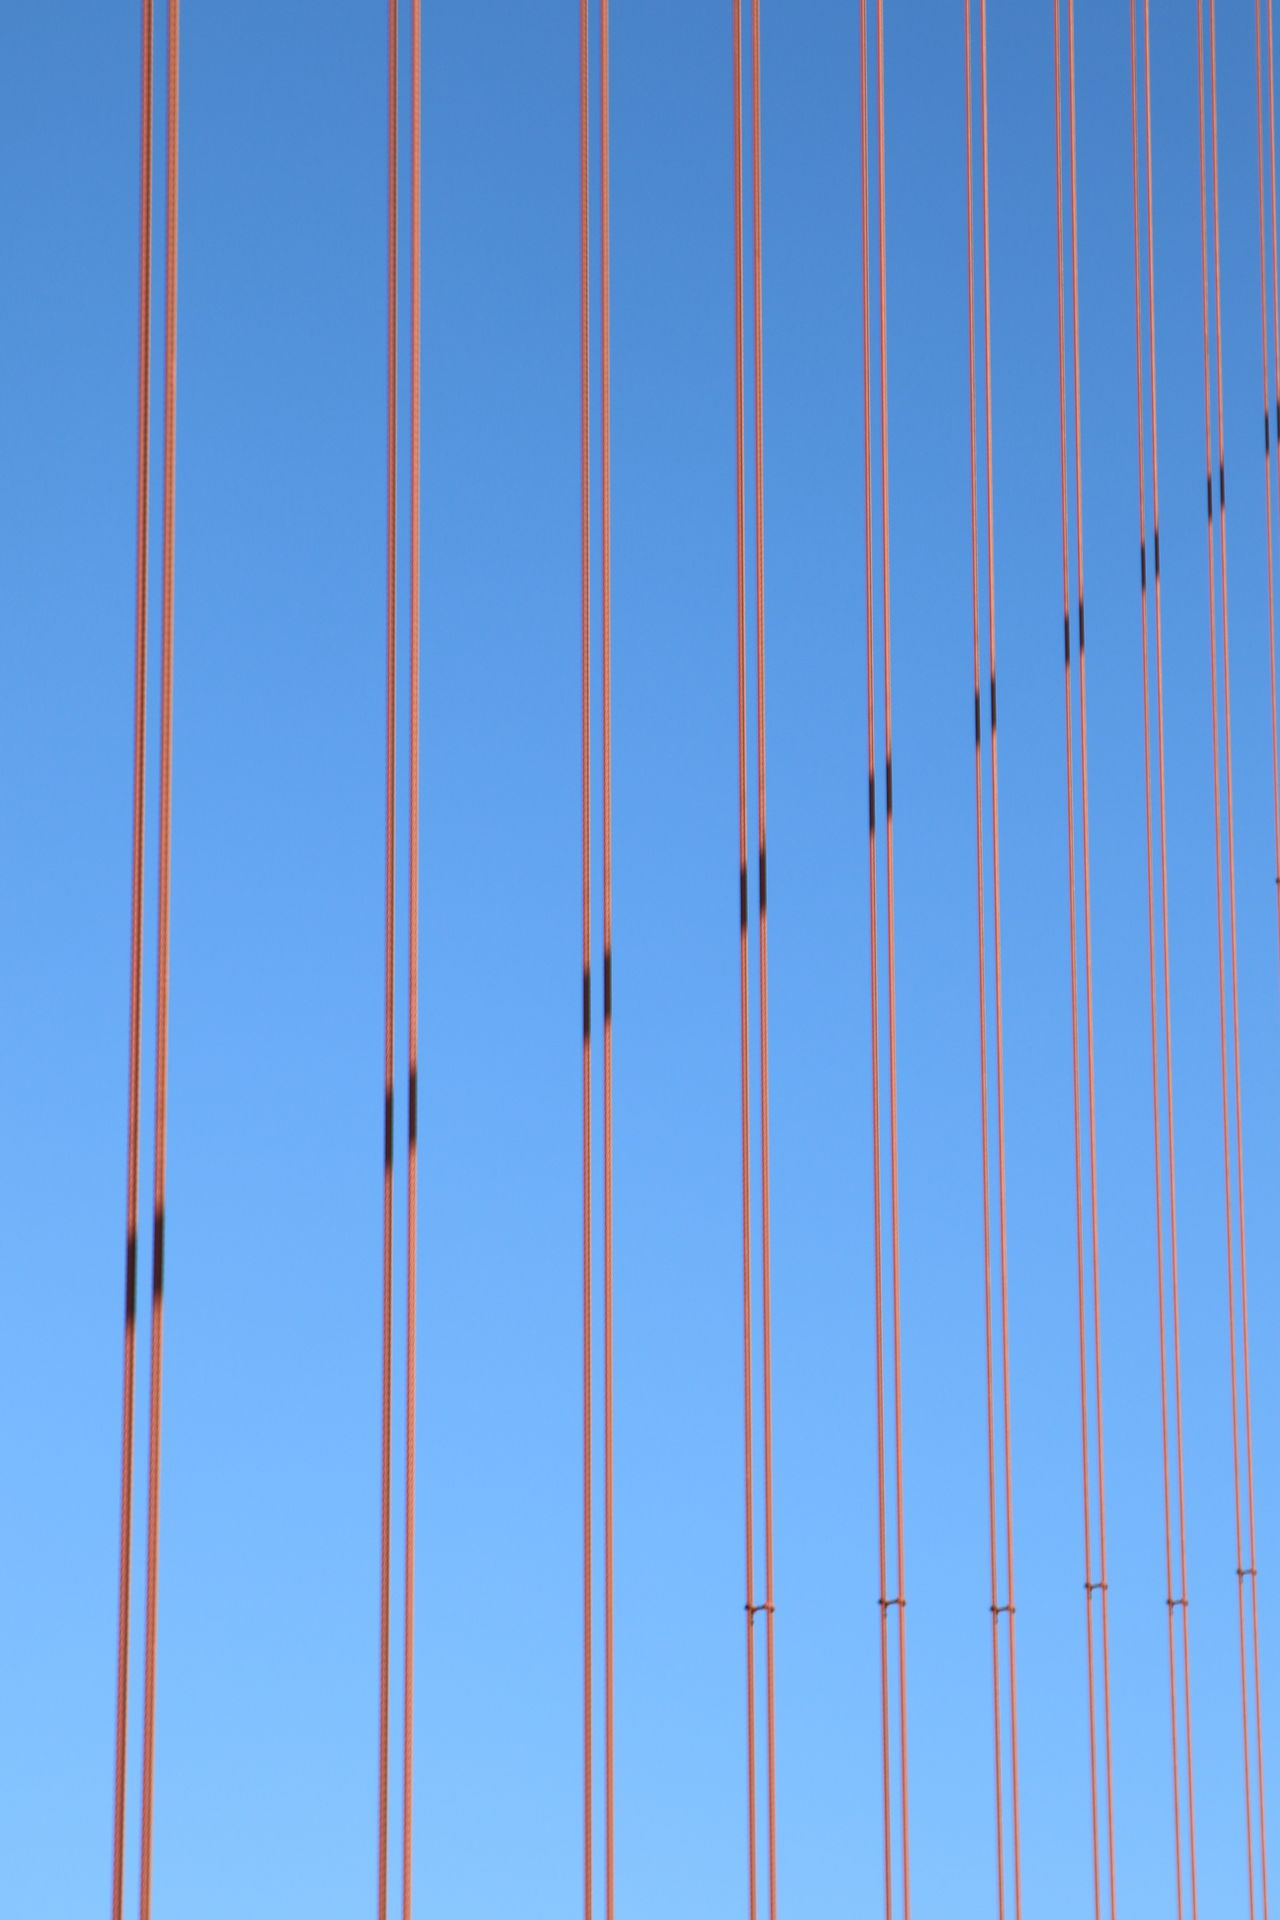 Architecture Blue Clear Sky Day Full Frame Geometric Shape Golden Gate Bridge Harp LINE No People San Francisco Shadows Sky Stability Steel Steel Strings Strings